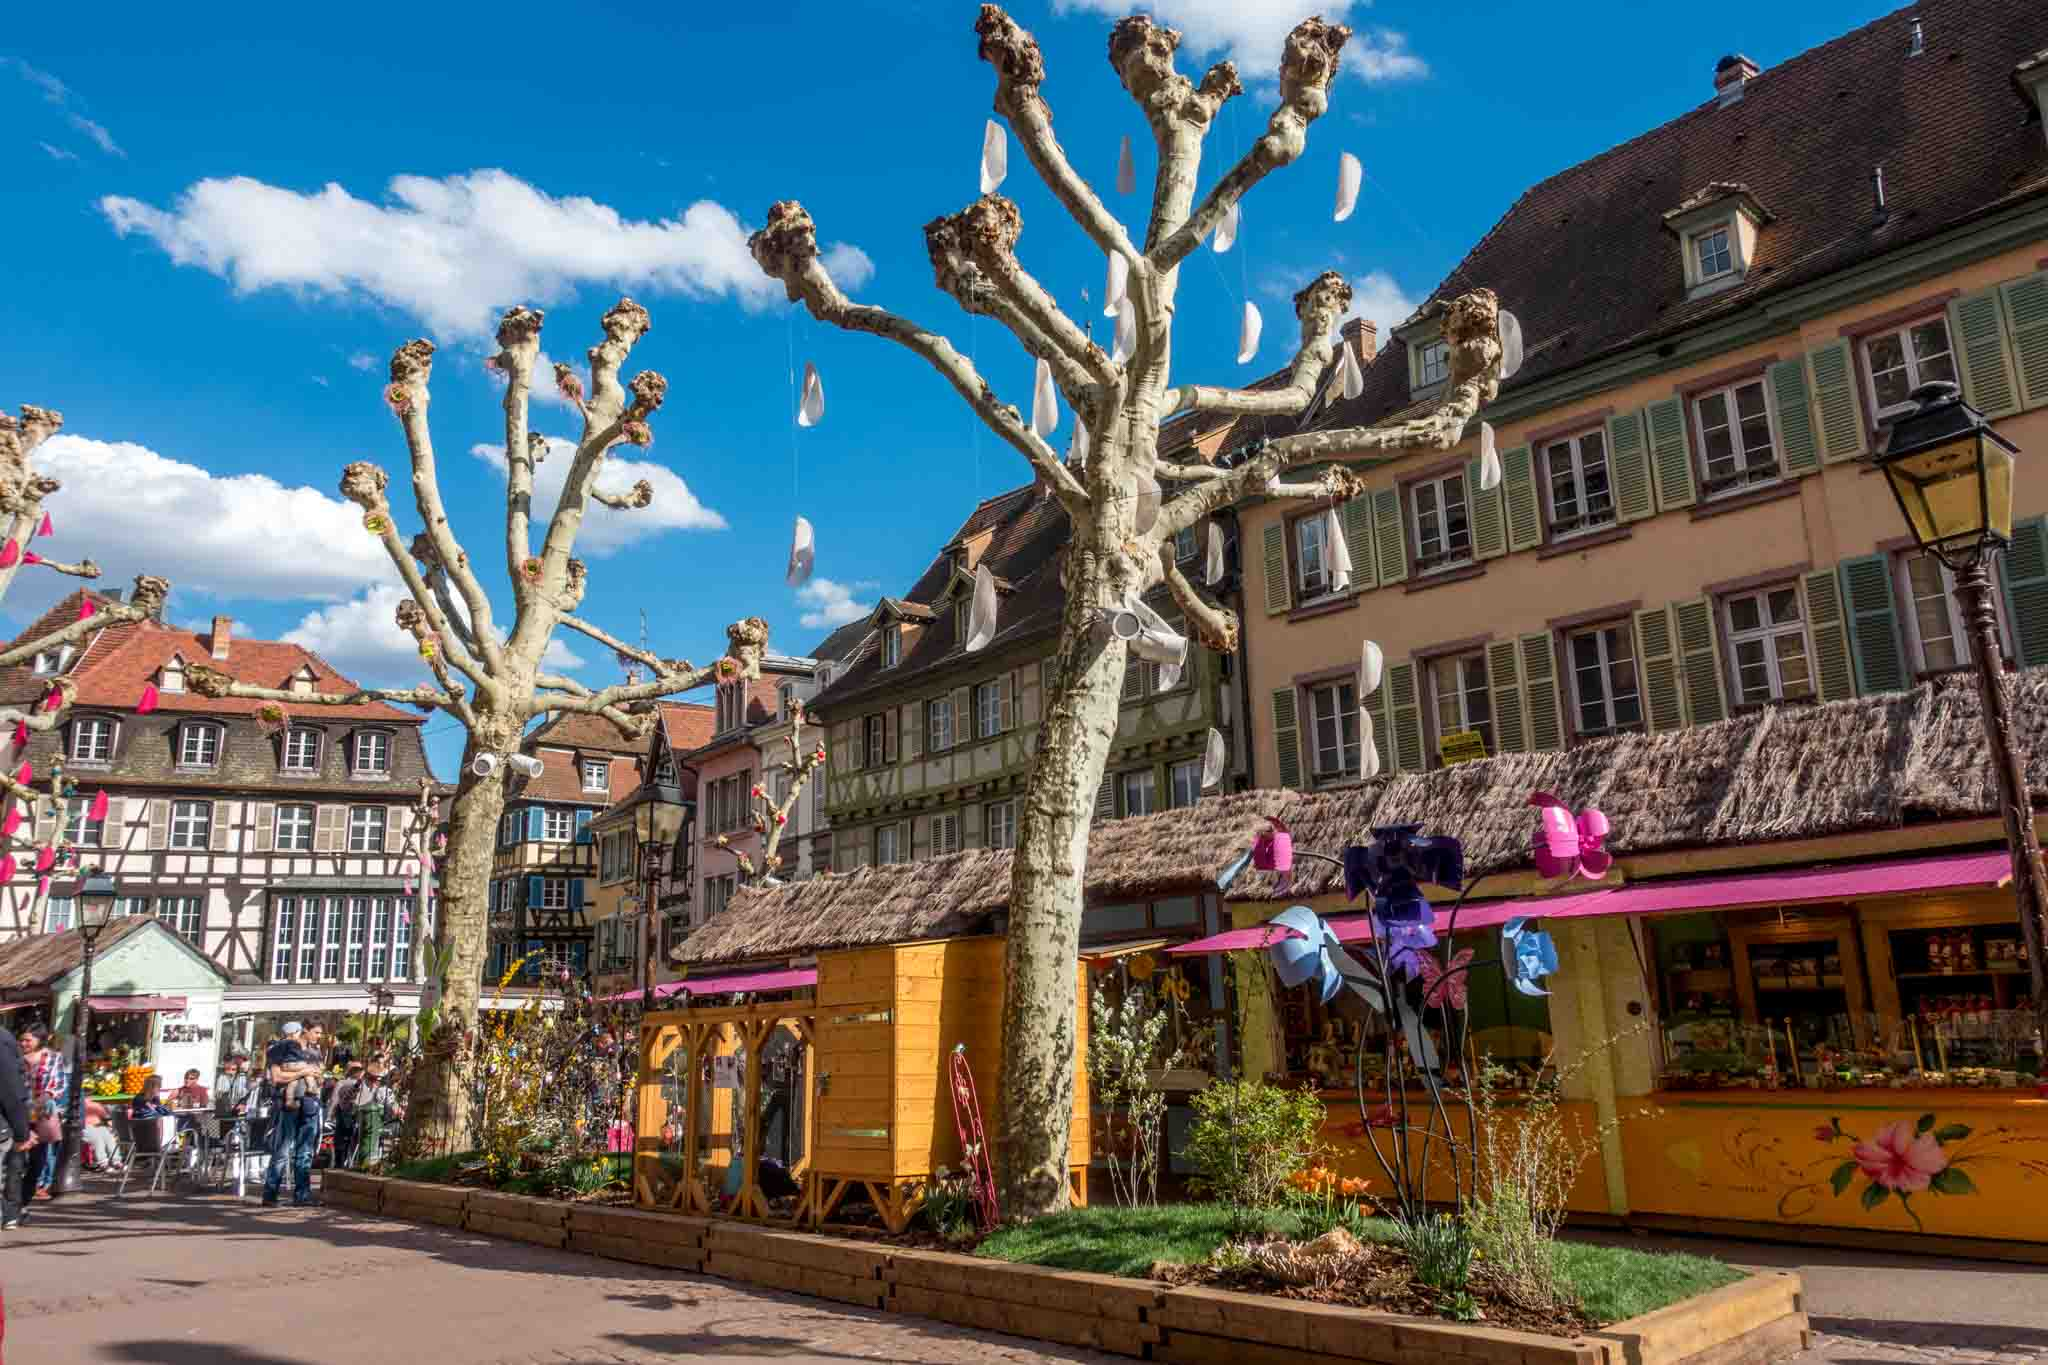 Easter market and spring decorations